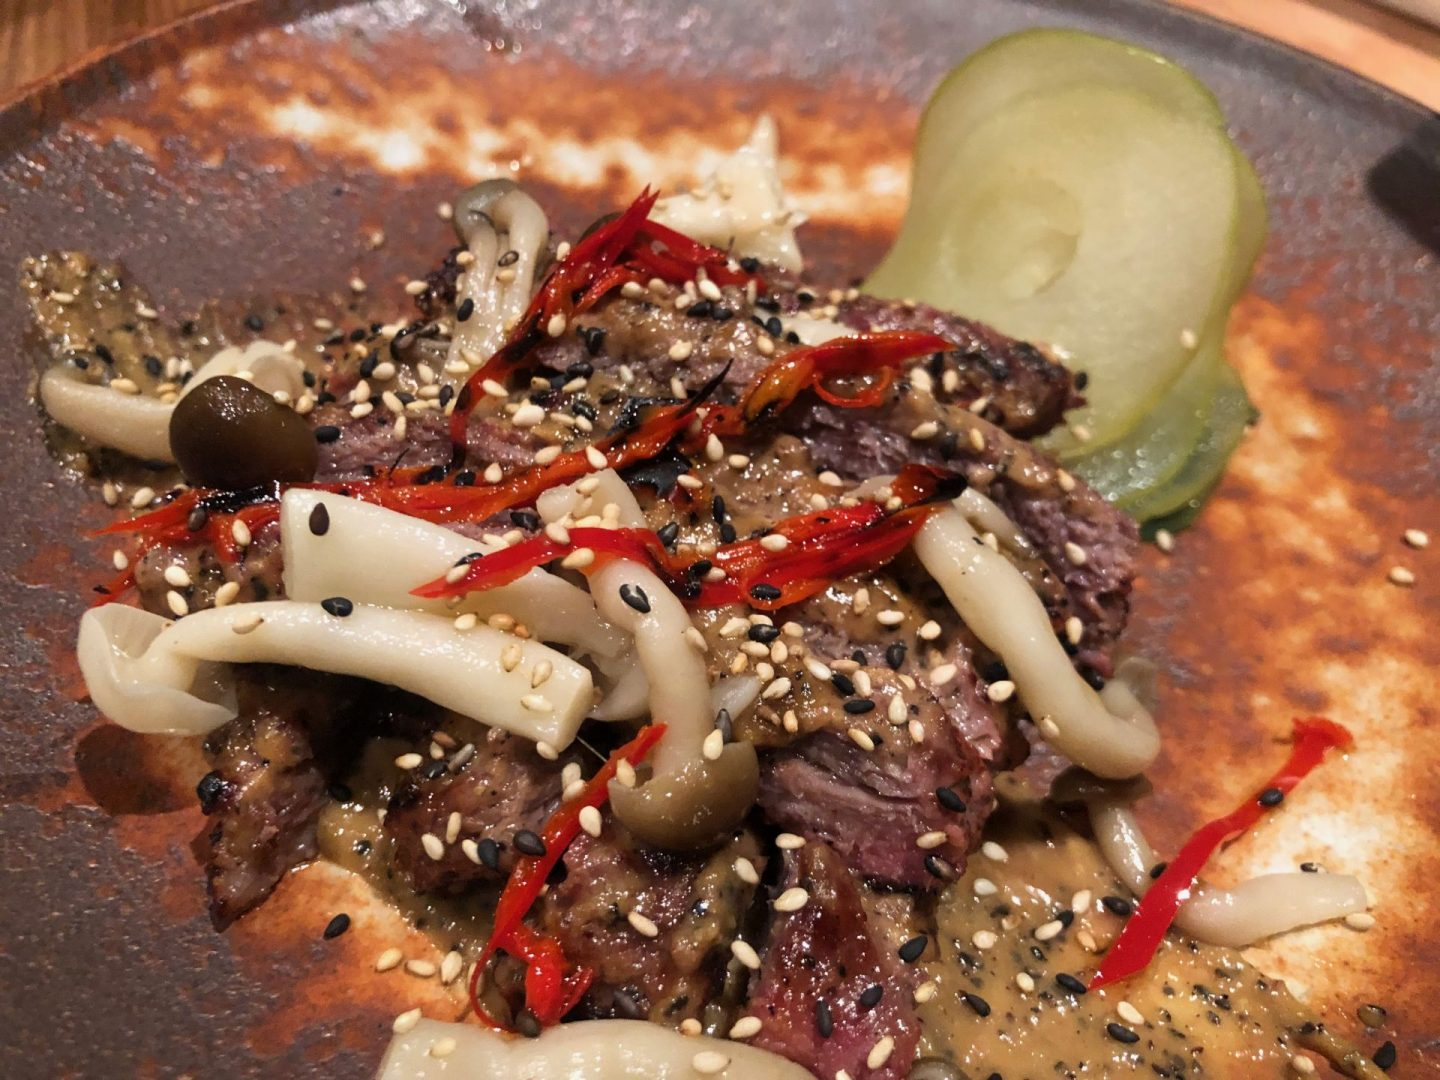 Charcoal fireside cooking at Soho's Robata restaurant : pork pluma : my dish of the evening